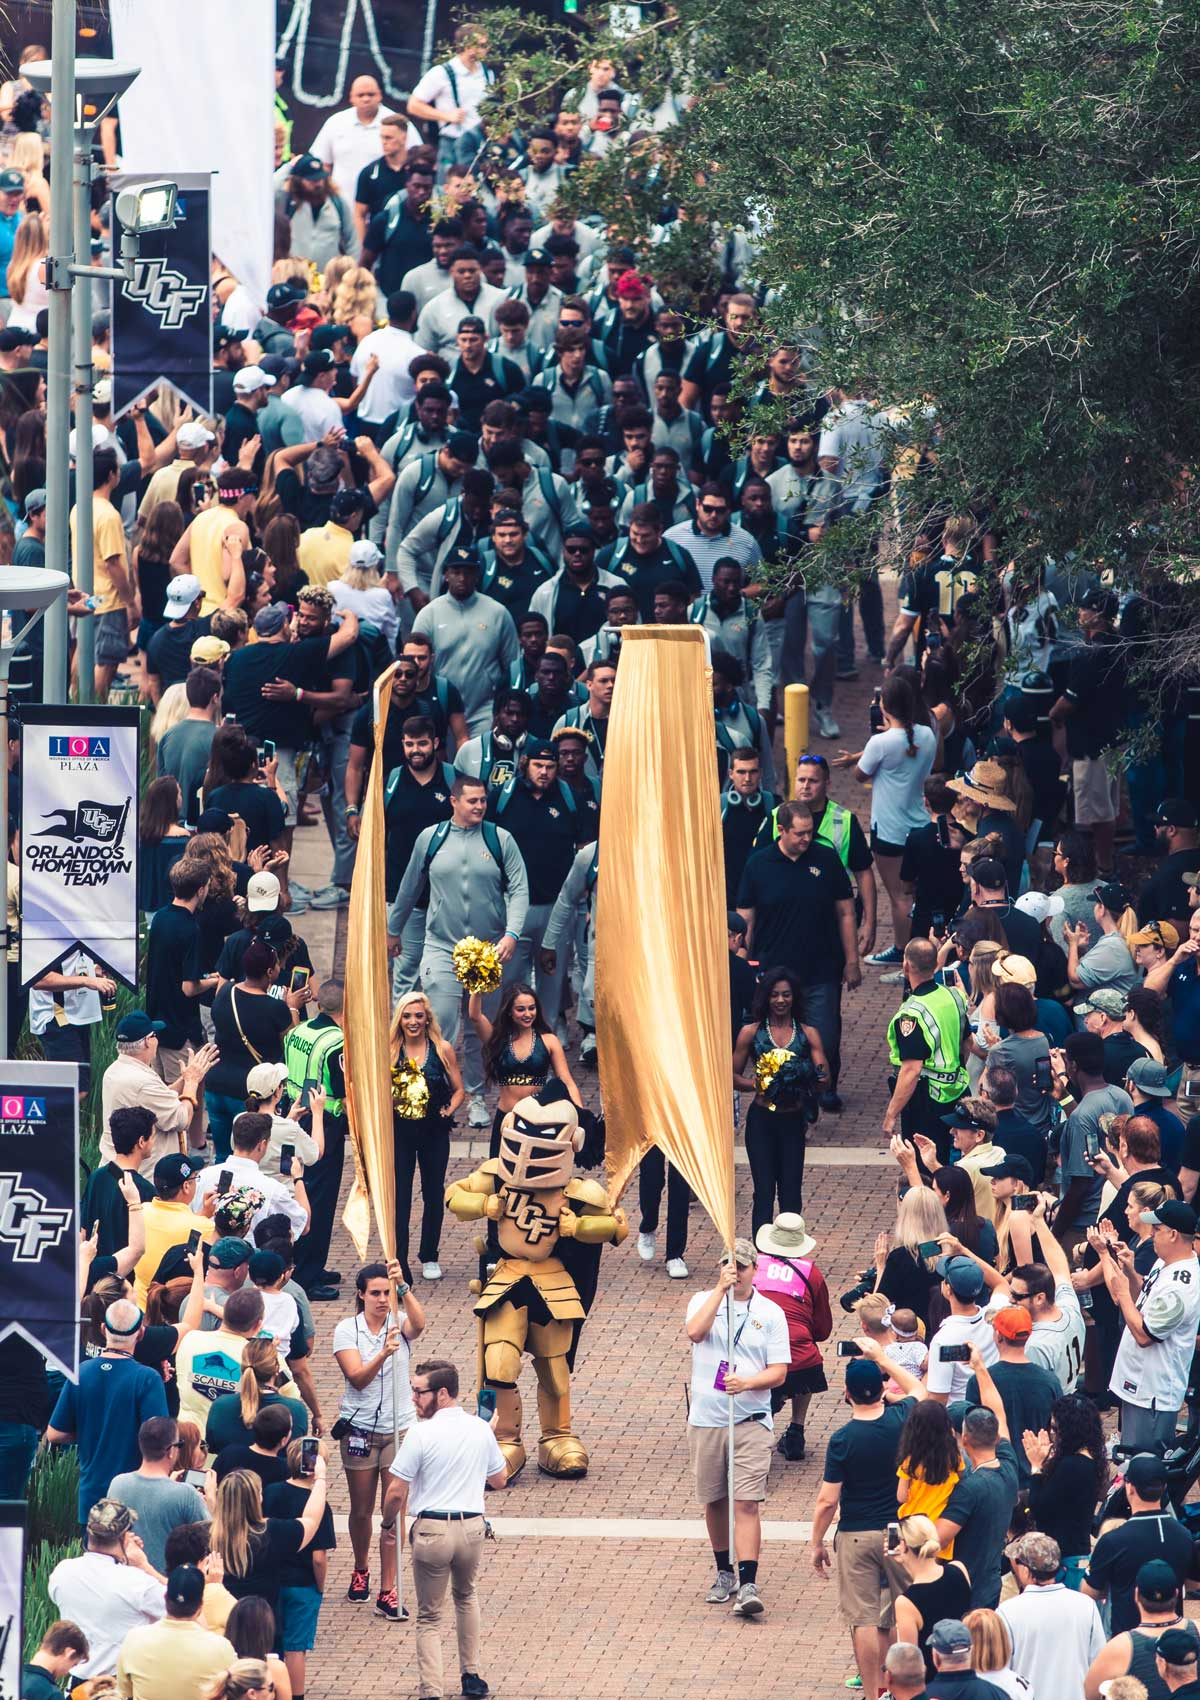 UCF mascot Knightro walks on a brick sidewalk with gold banners on either side of him and the team behind him as cheering fans line the path